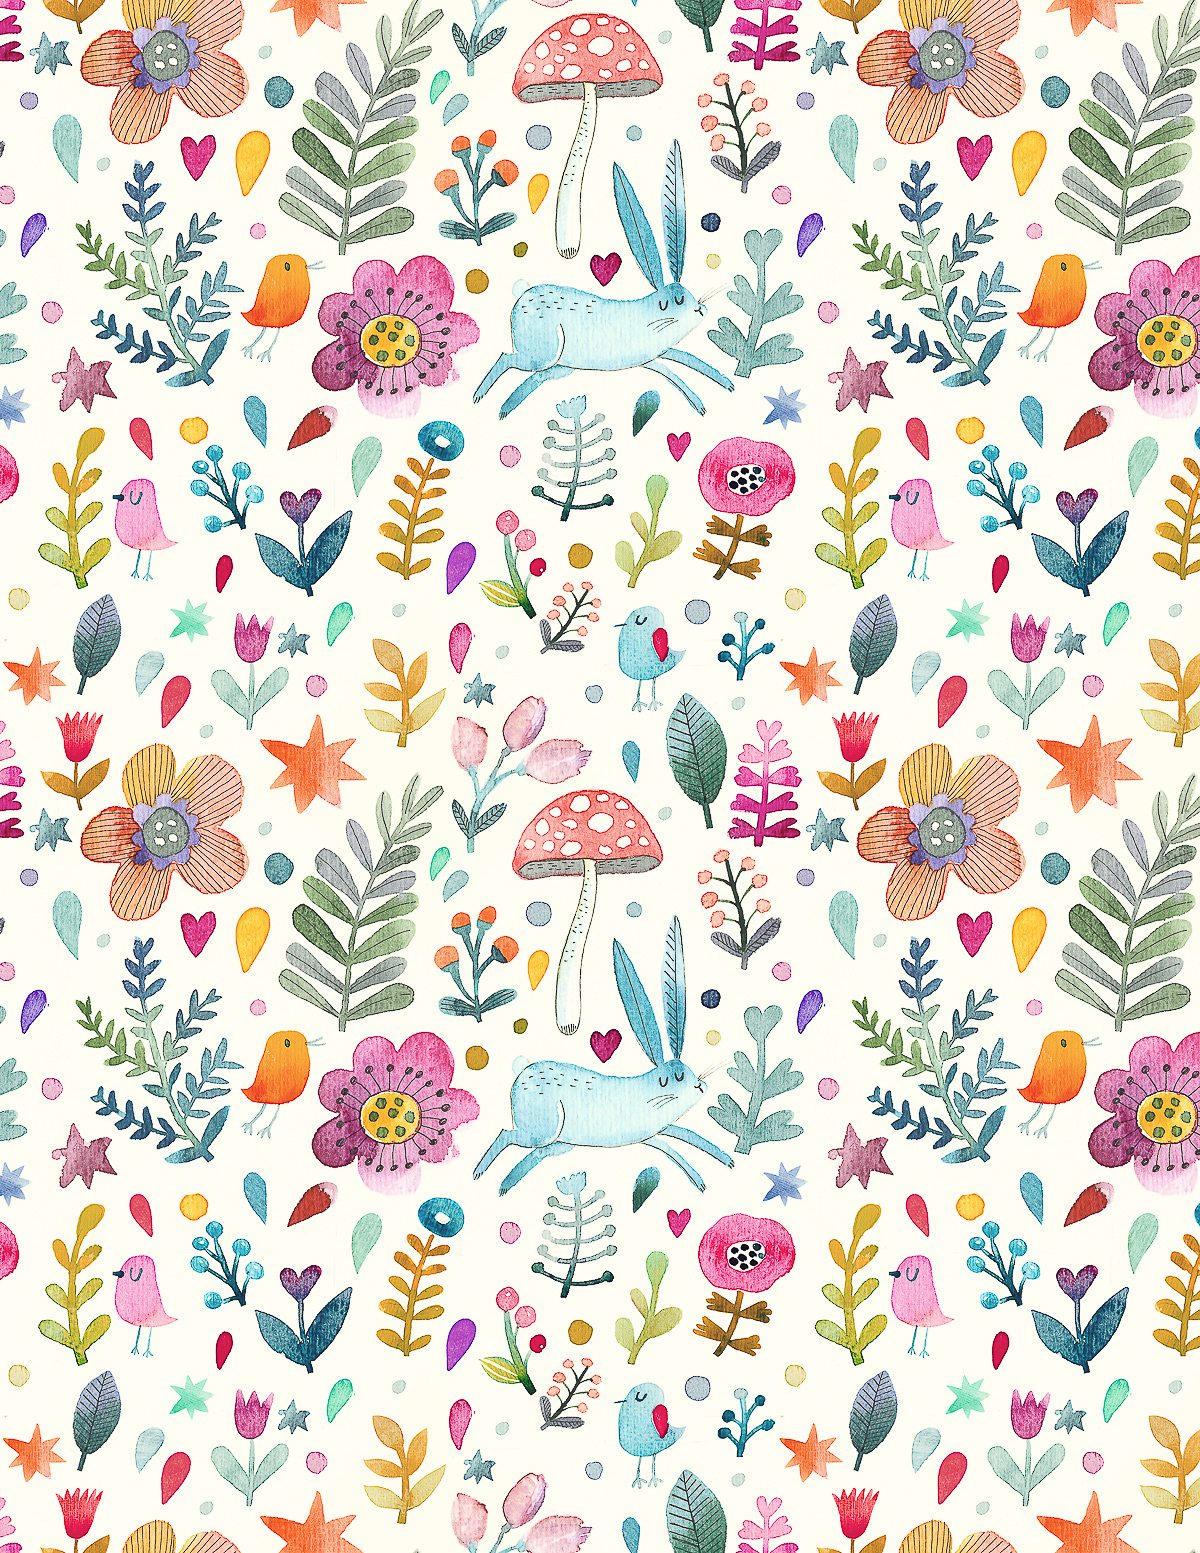 Sweet Watercolor Bunny Gift Wrap - Free Printable - Tinselbox - Free Printable Easter Wrapping Paper